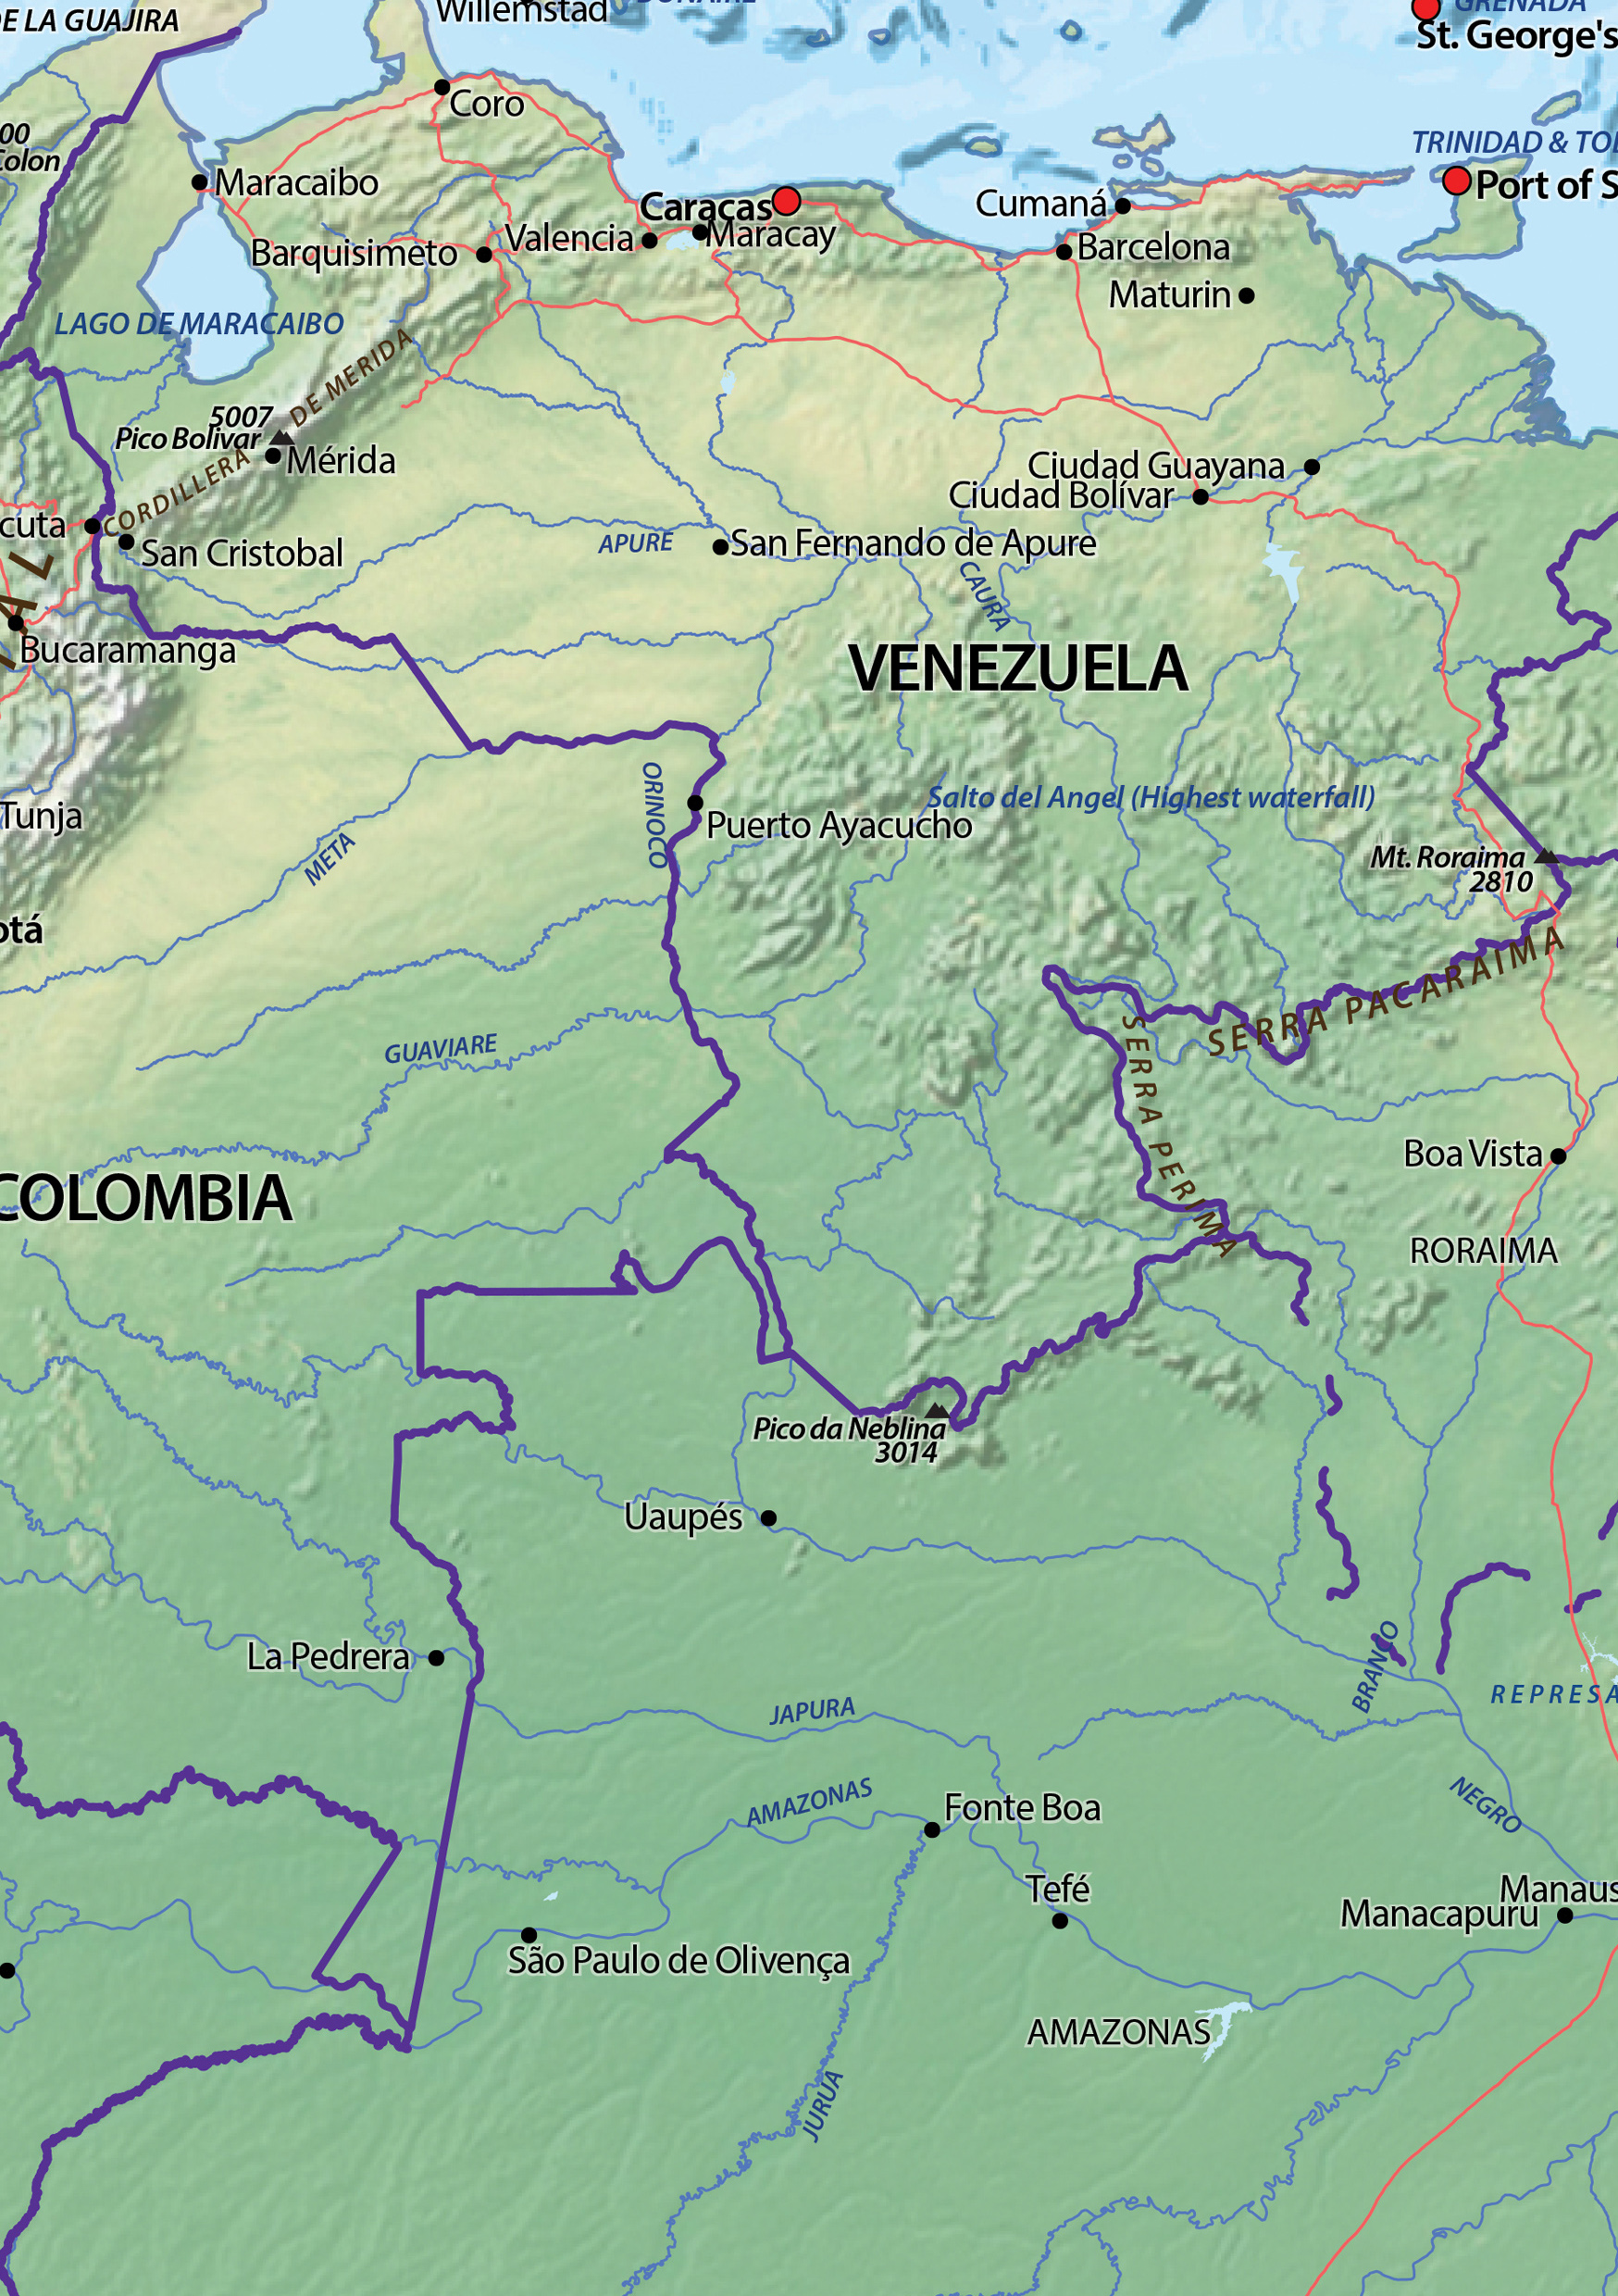 Digital Map South America Physical 605 The World of Mapscom